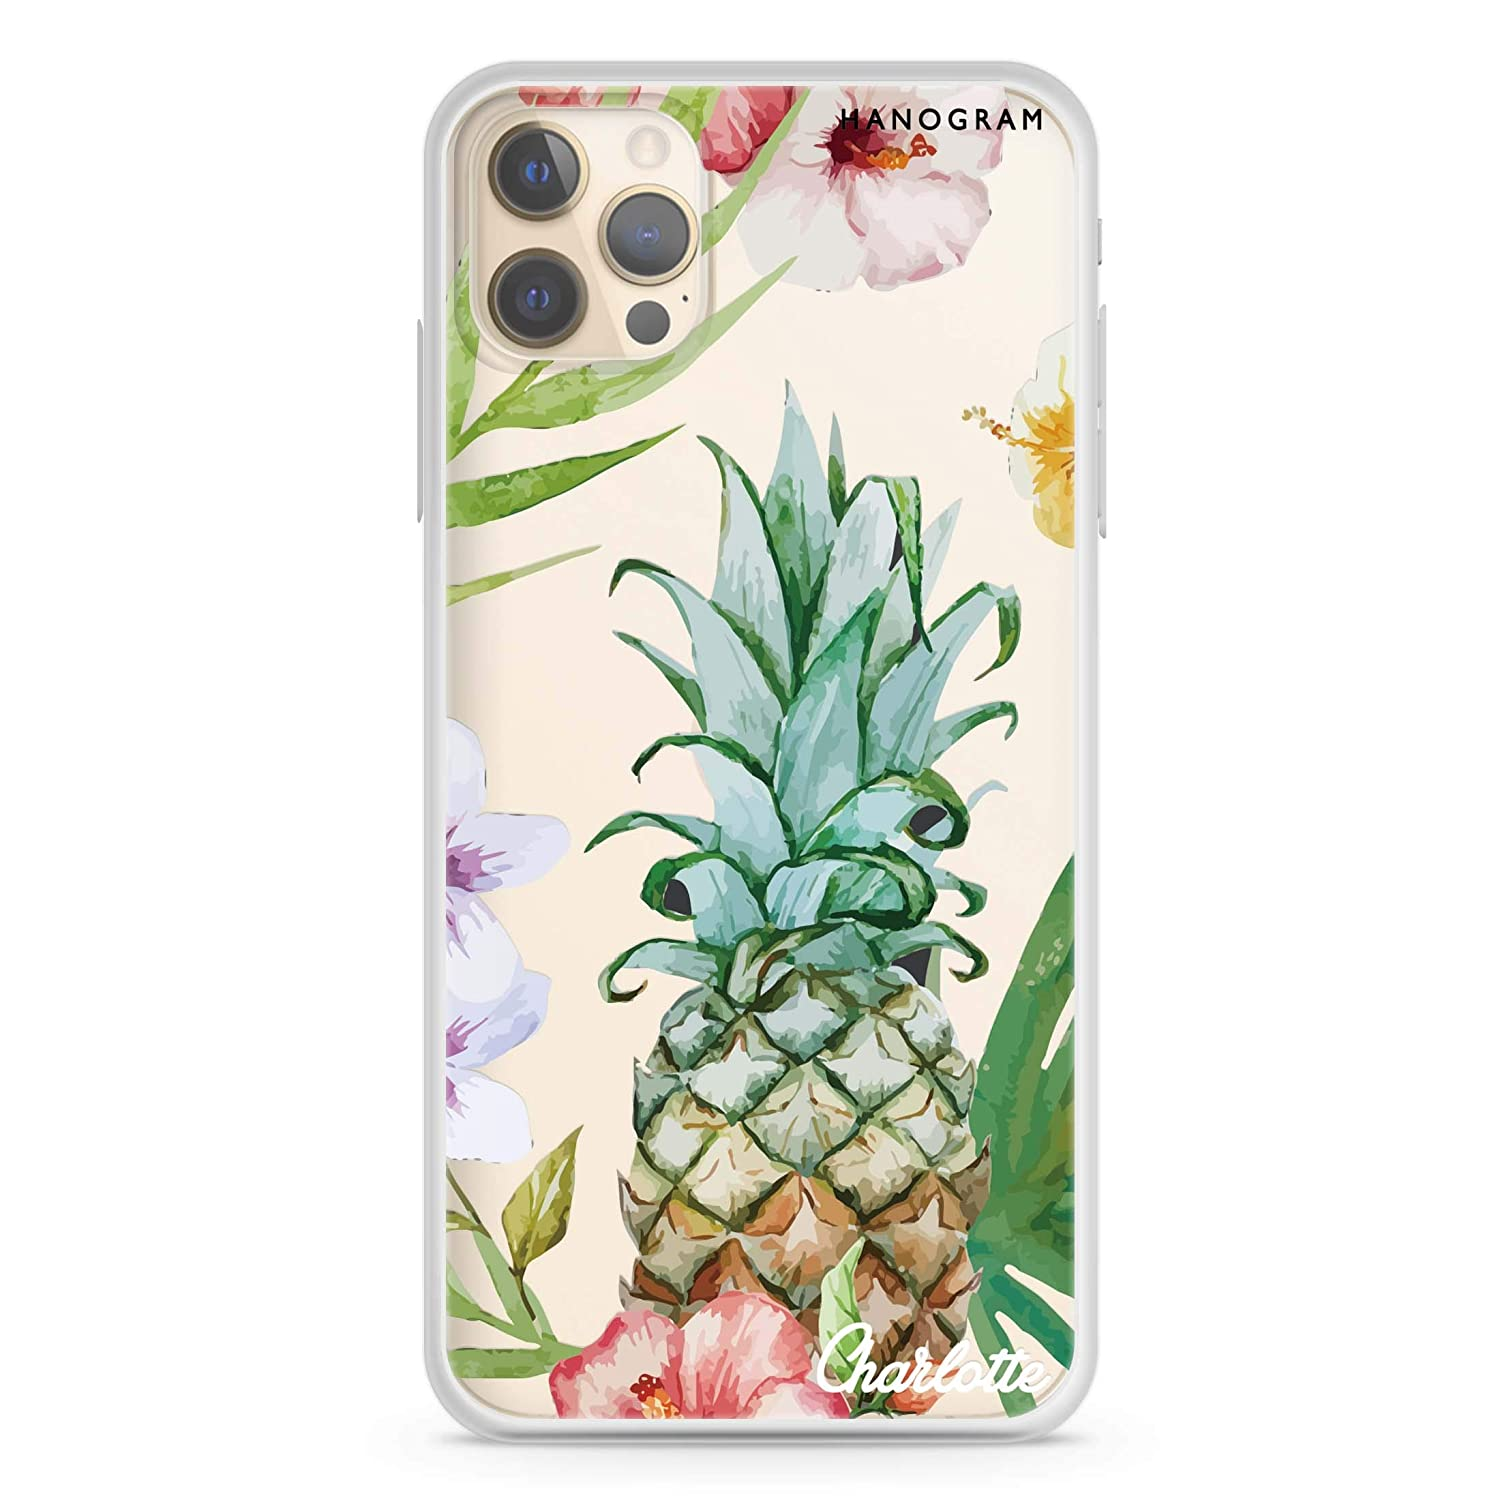 Pineapple Floral iPhone 12 Pro Clear Bargain sale Soft Case Raleigh Mall Max